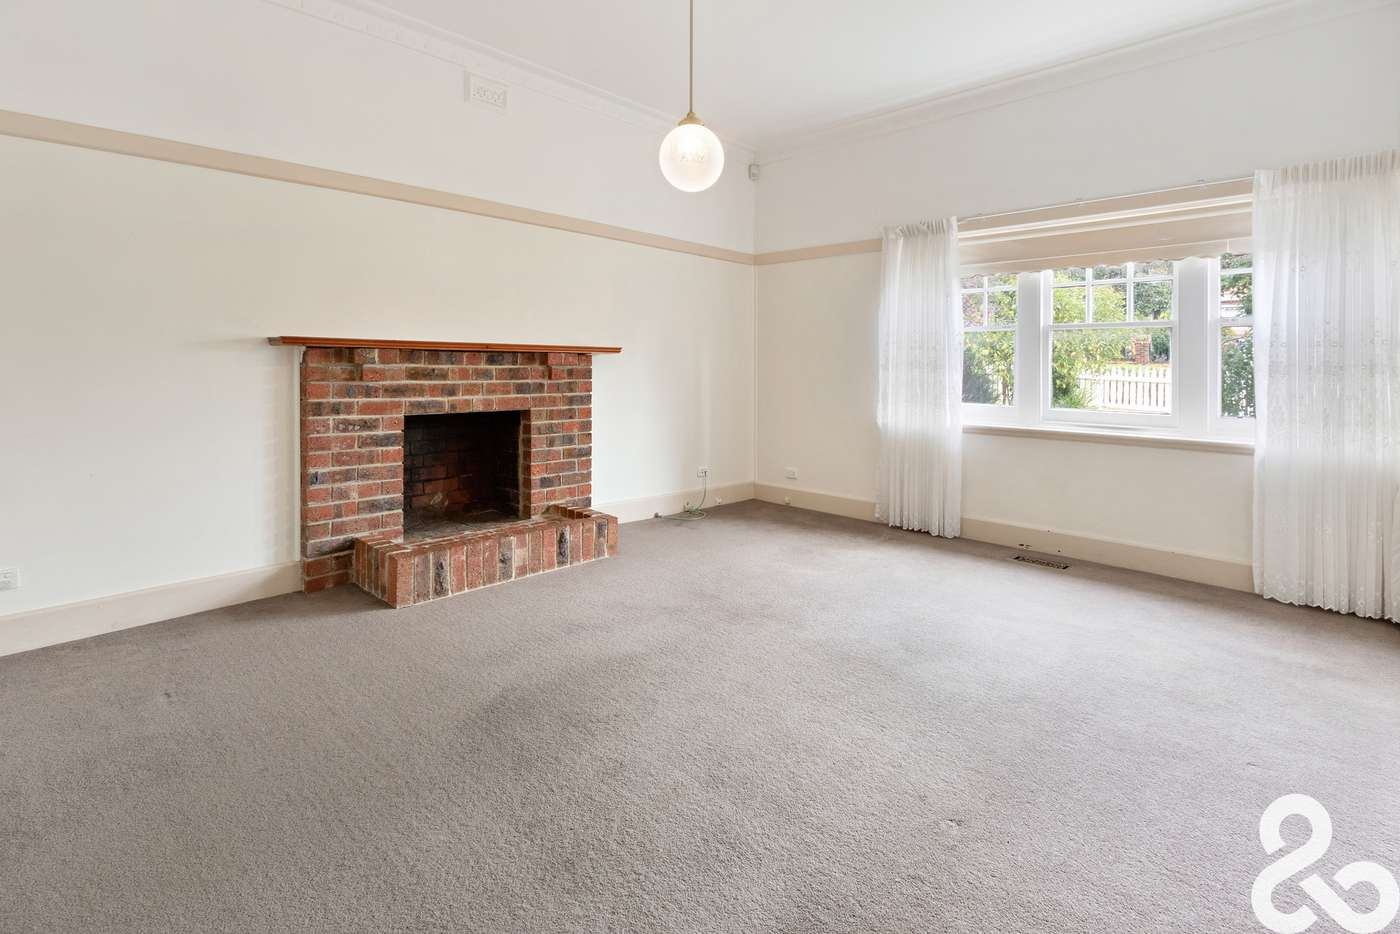 Main view of Homely house listing, 10 Howard Street, Reservoir VIC 3073